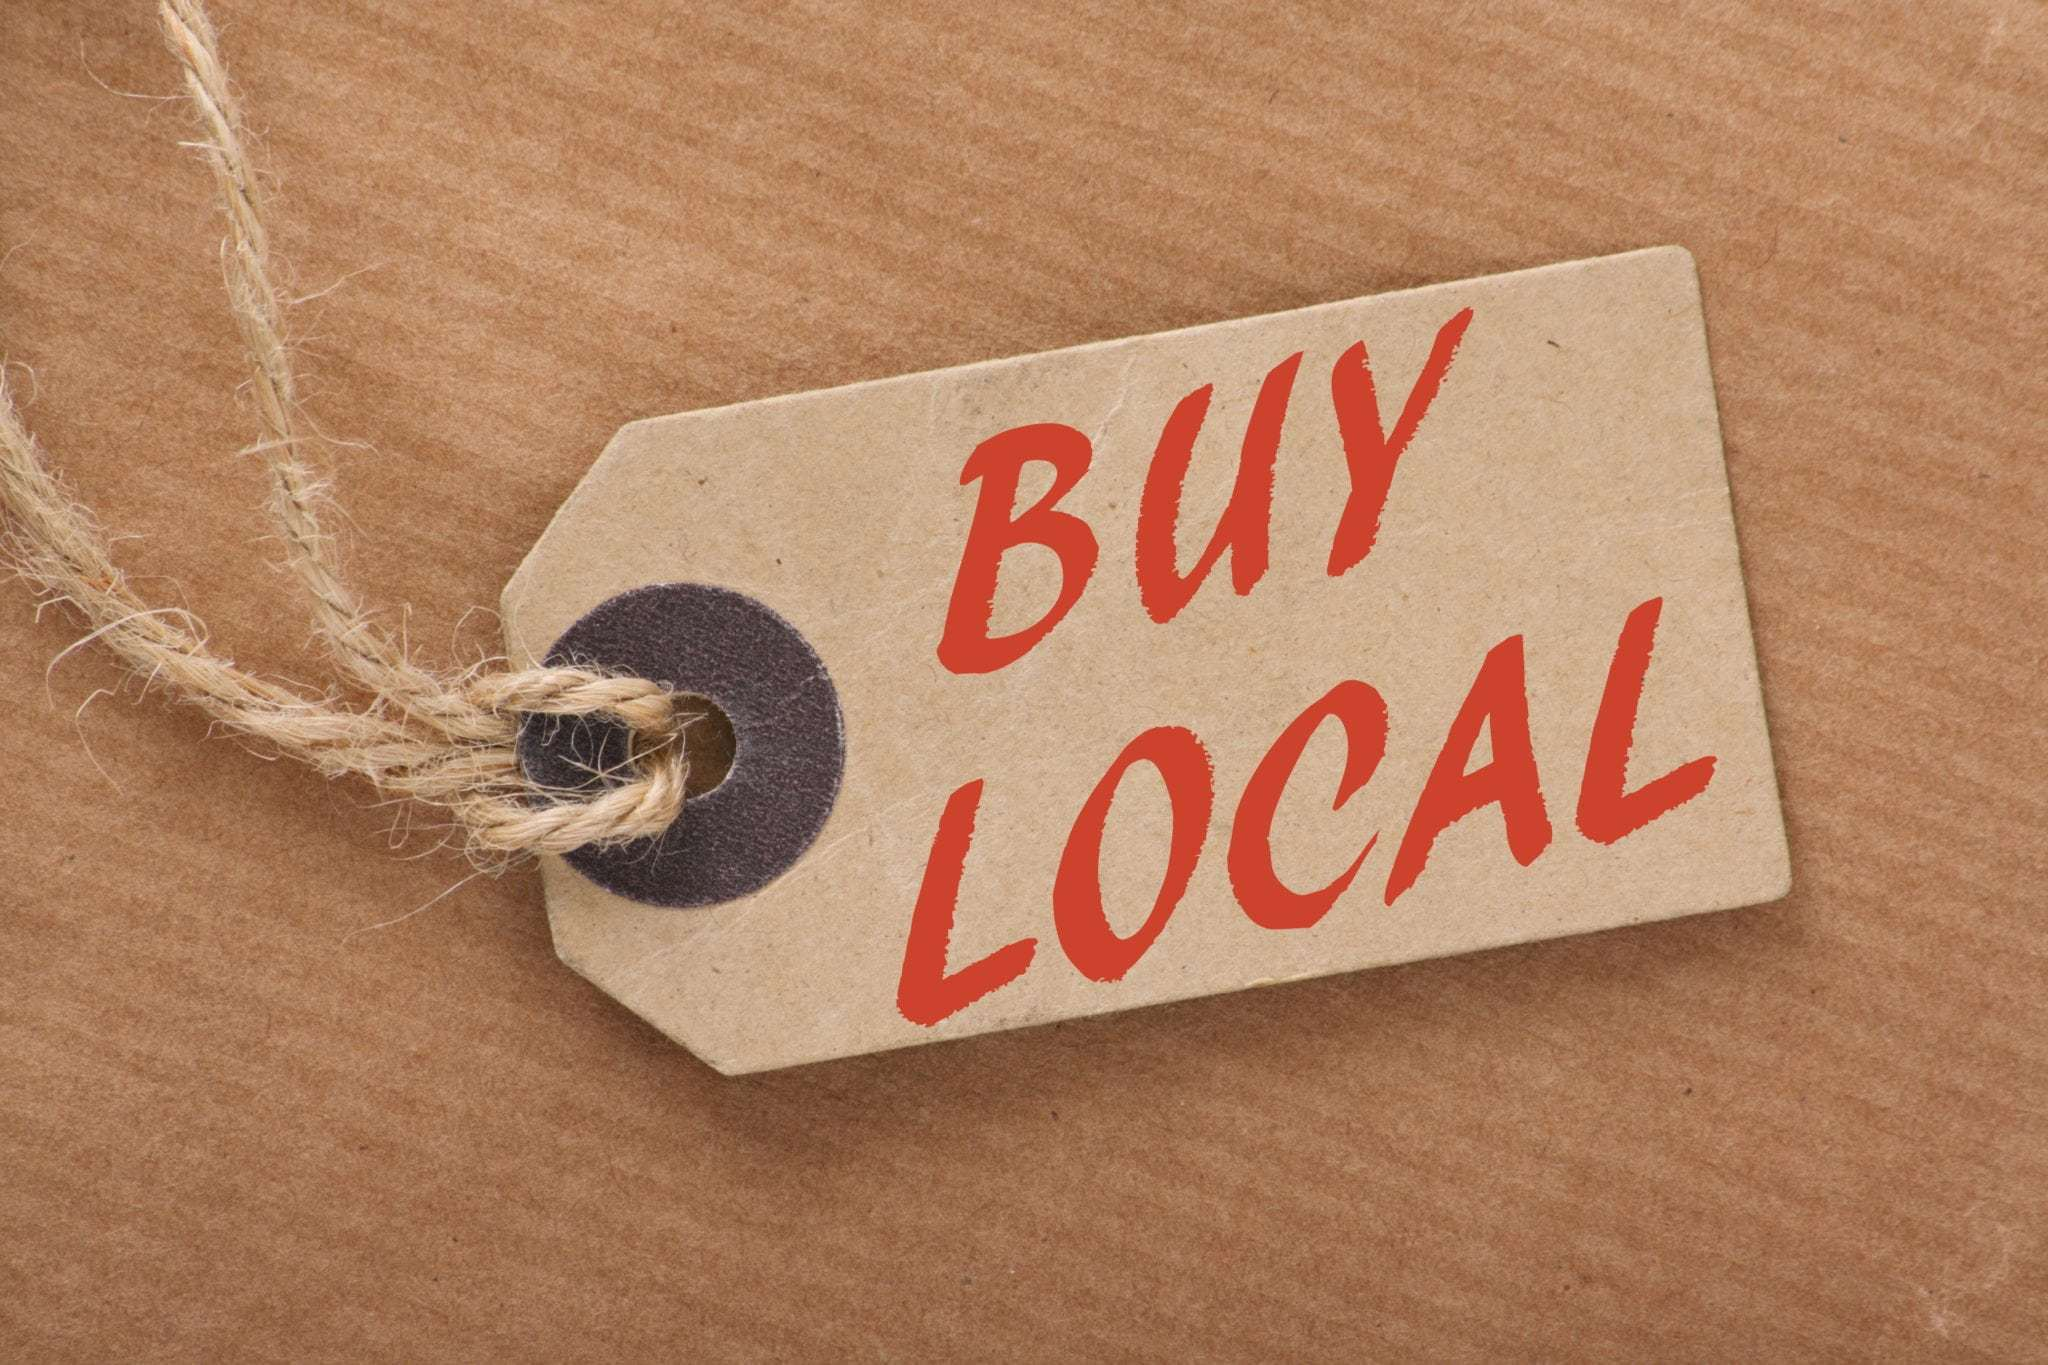 Buy Local Lowen's